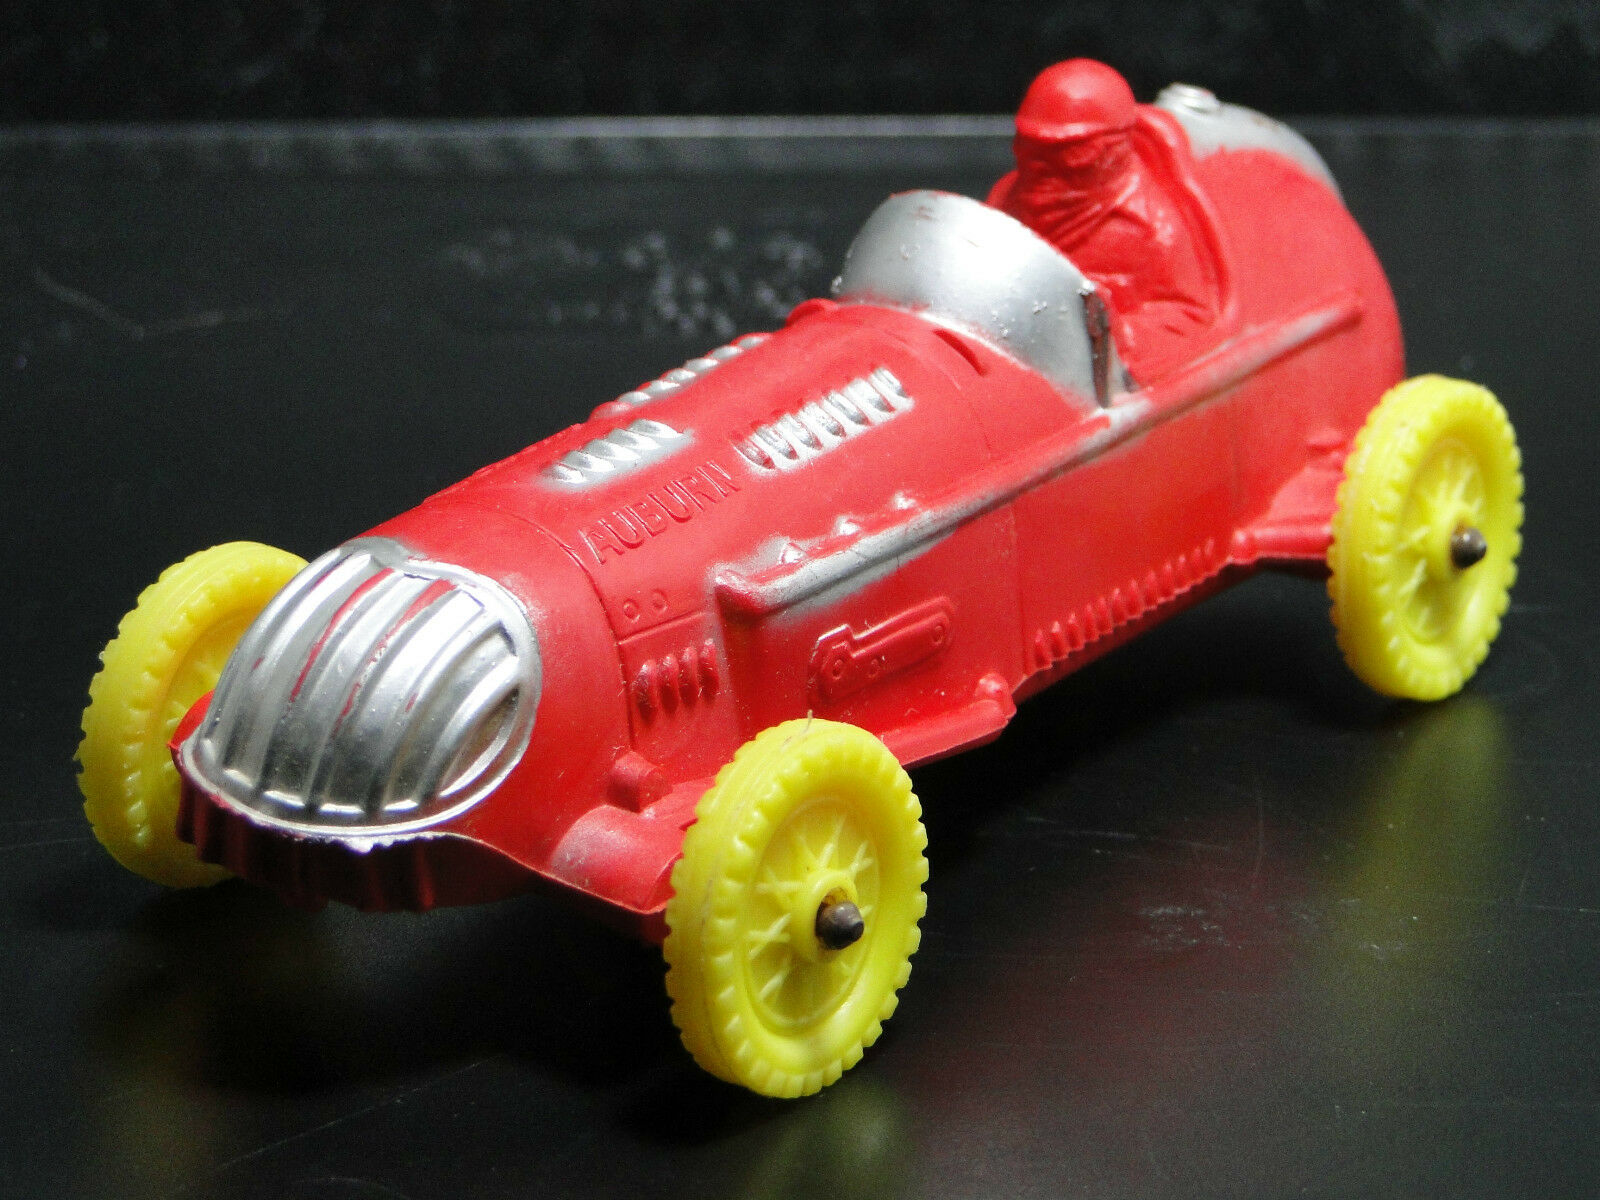 A Ford Model Racer Vintage Race Car GP F T Indy Midget Antique 1 18 1940 24 rosso